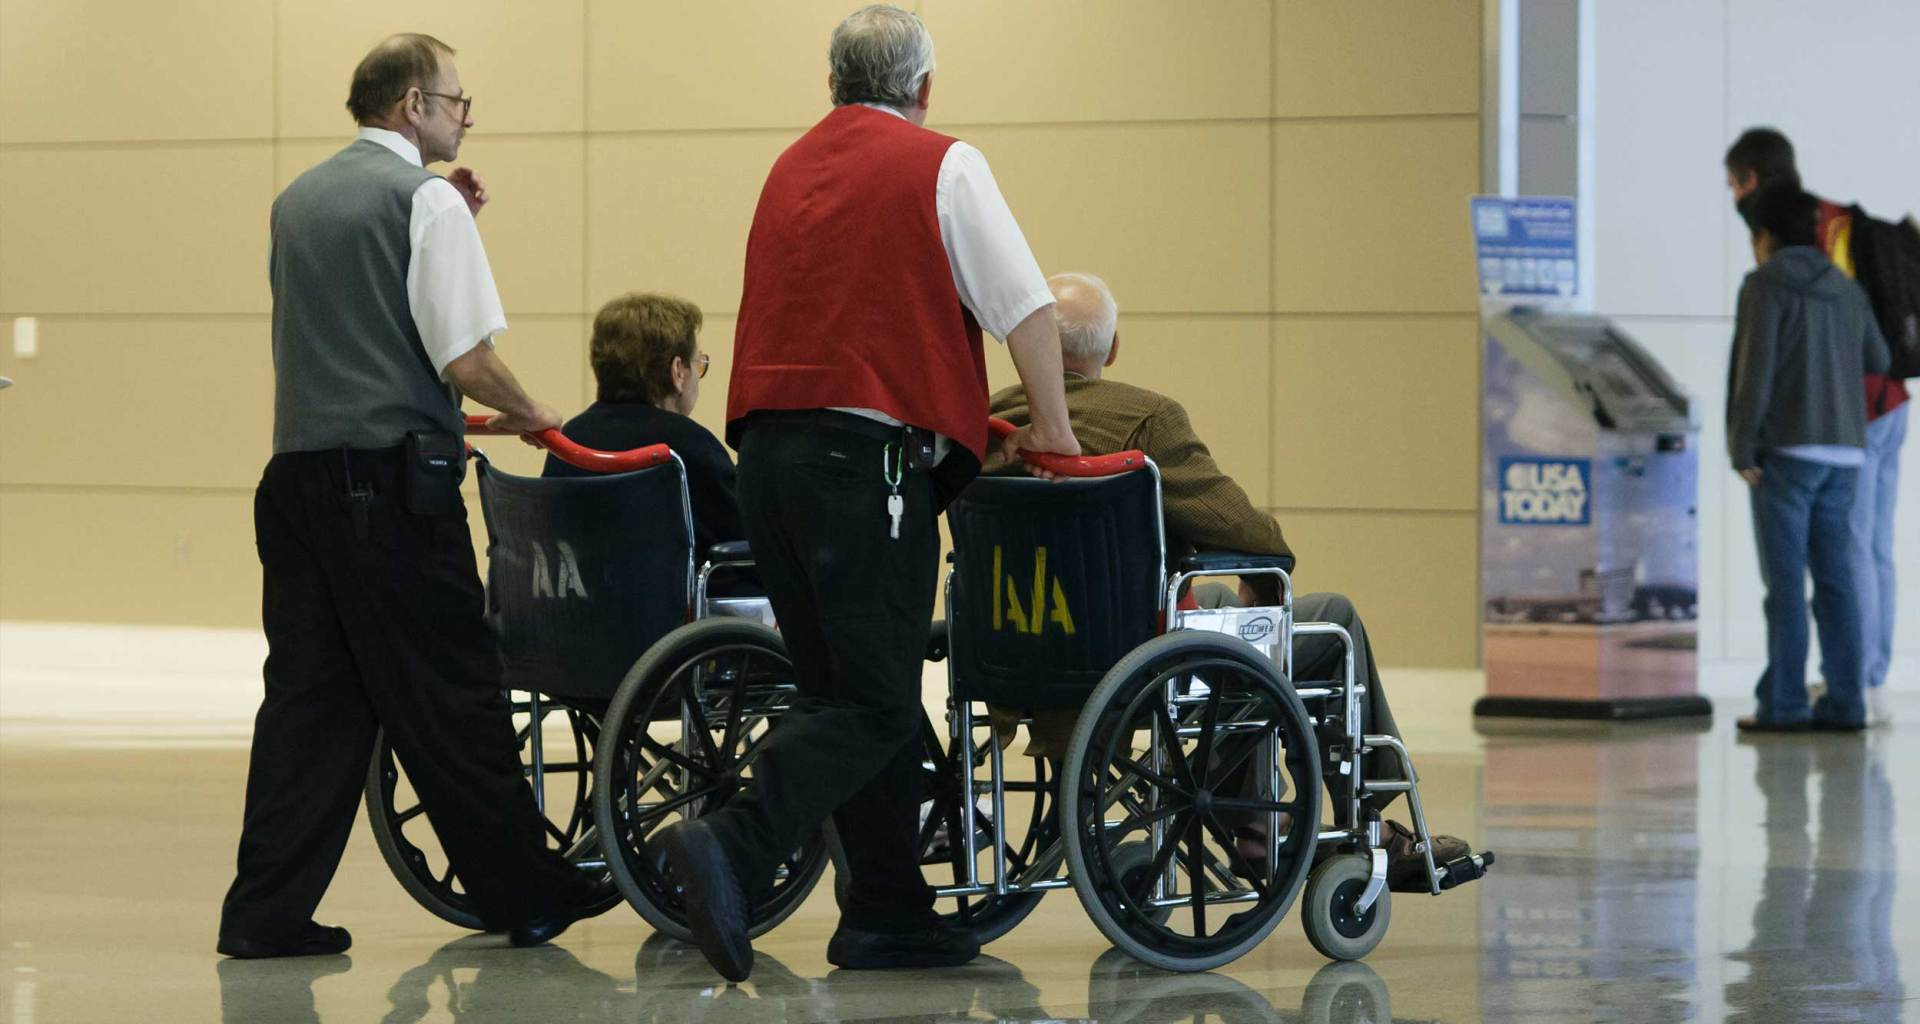 Two airline staff members pushing wheelchairs through the airport terminal.